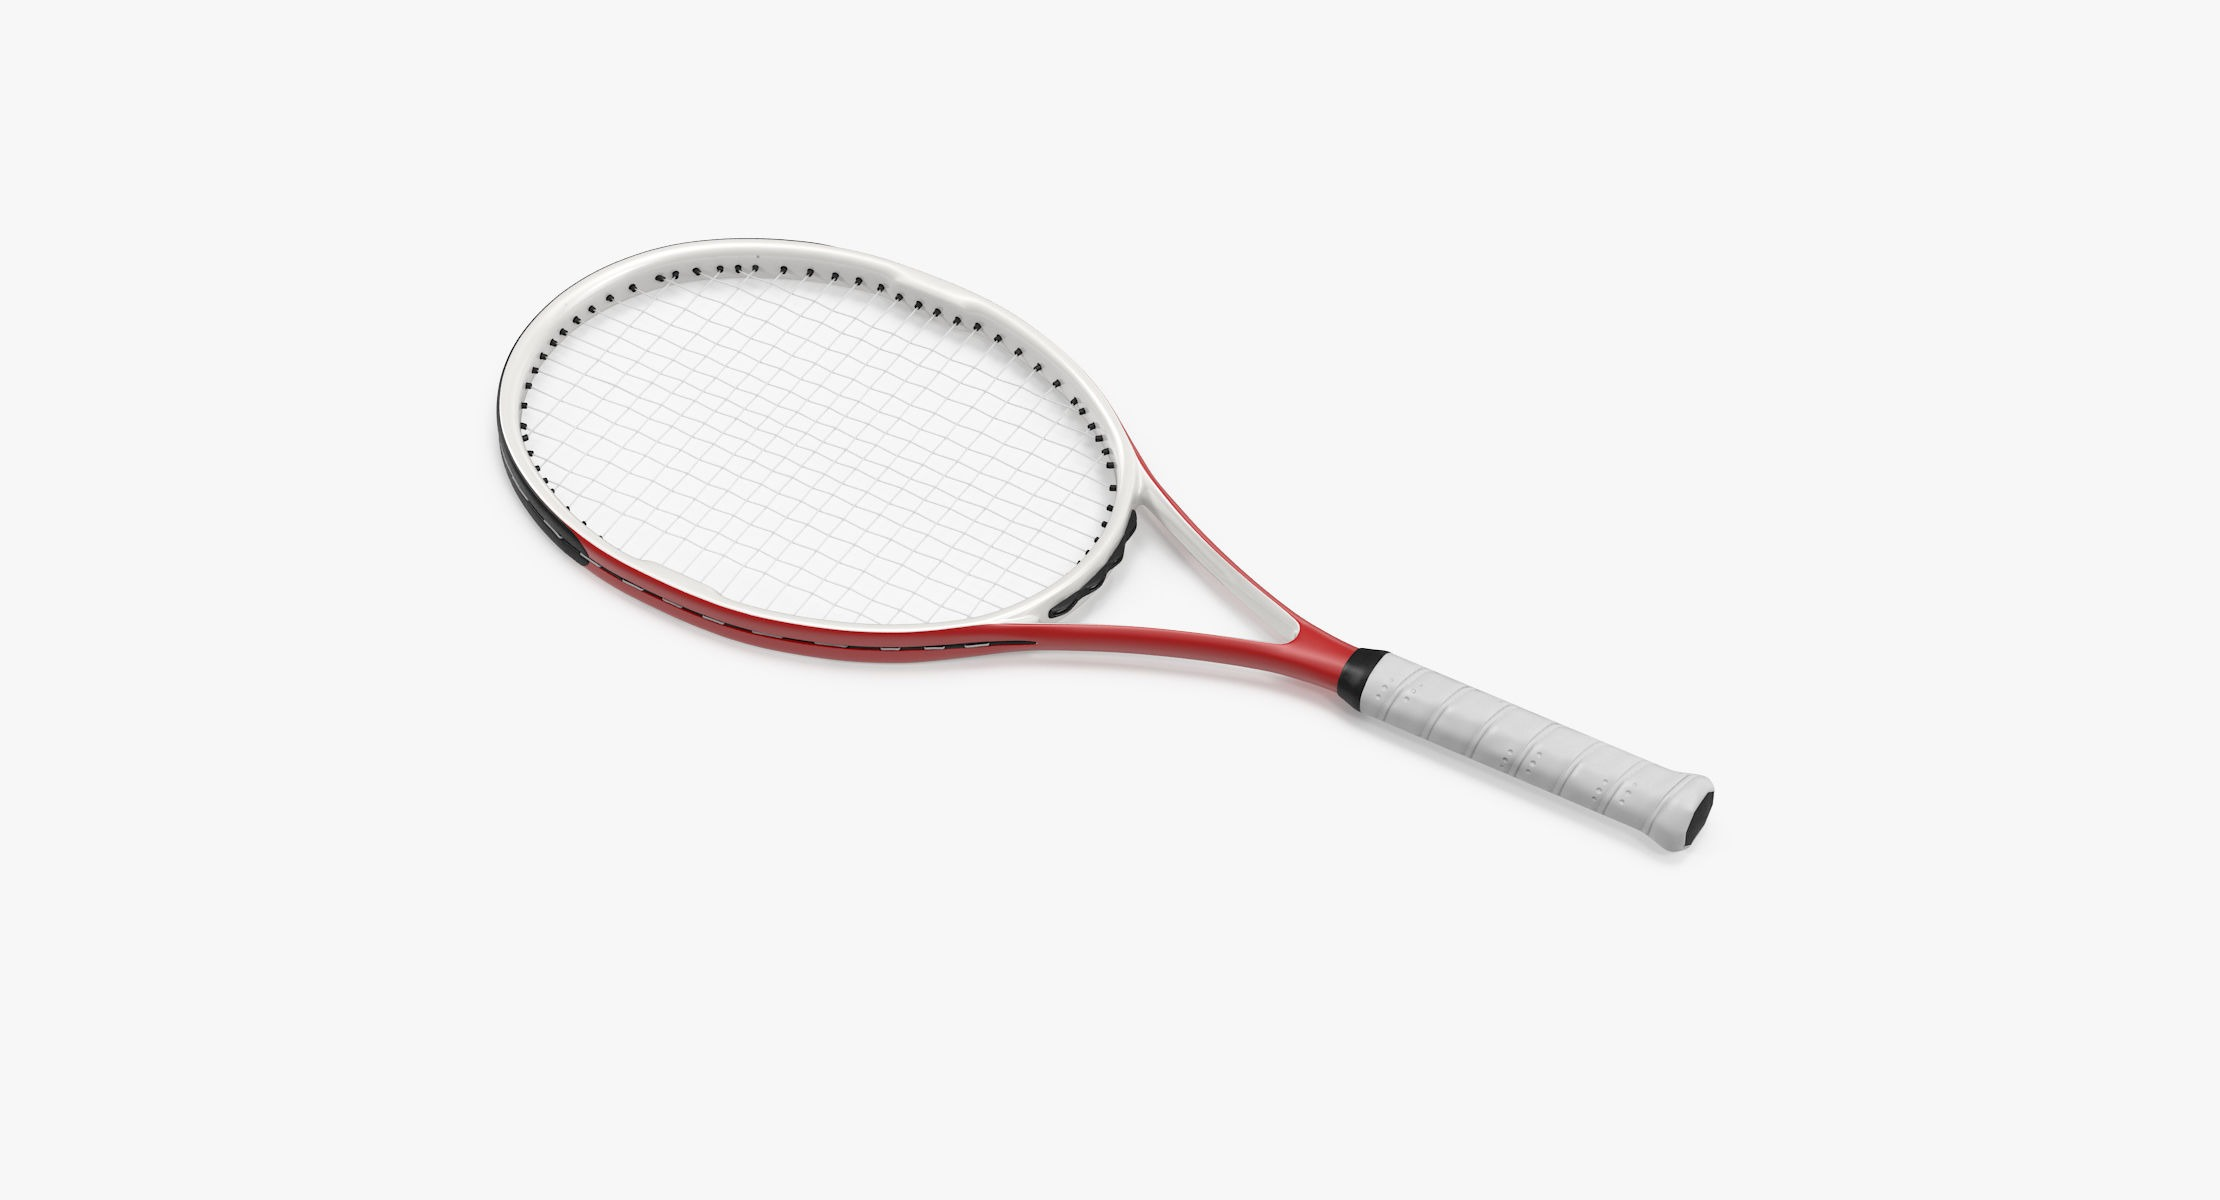 Tennis Racket 01 - reel 1